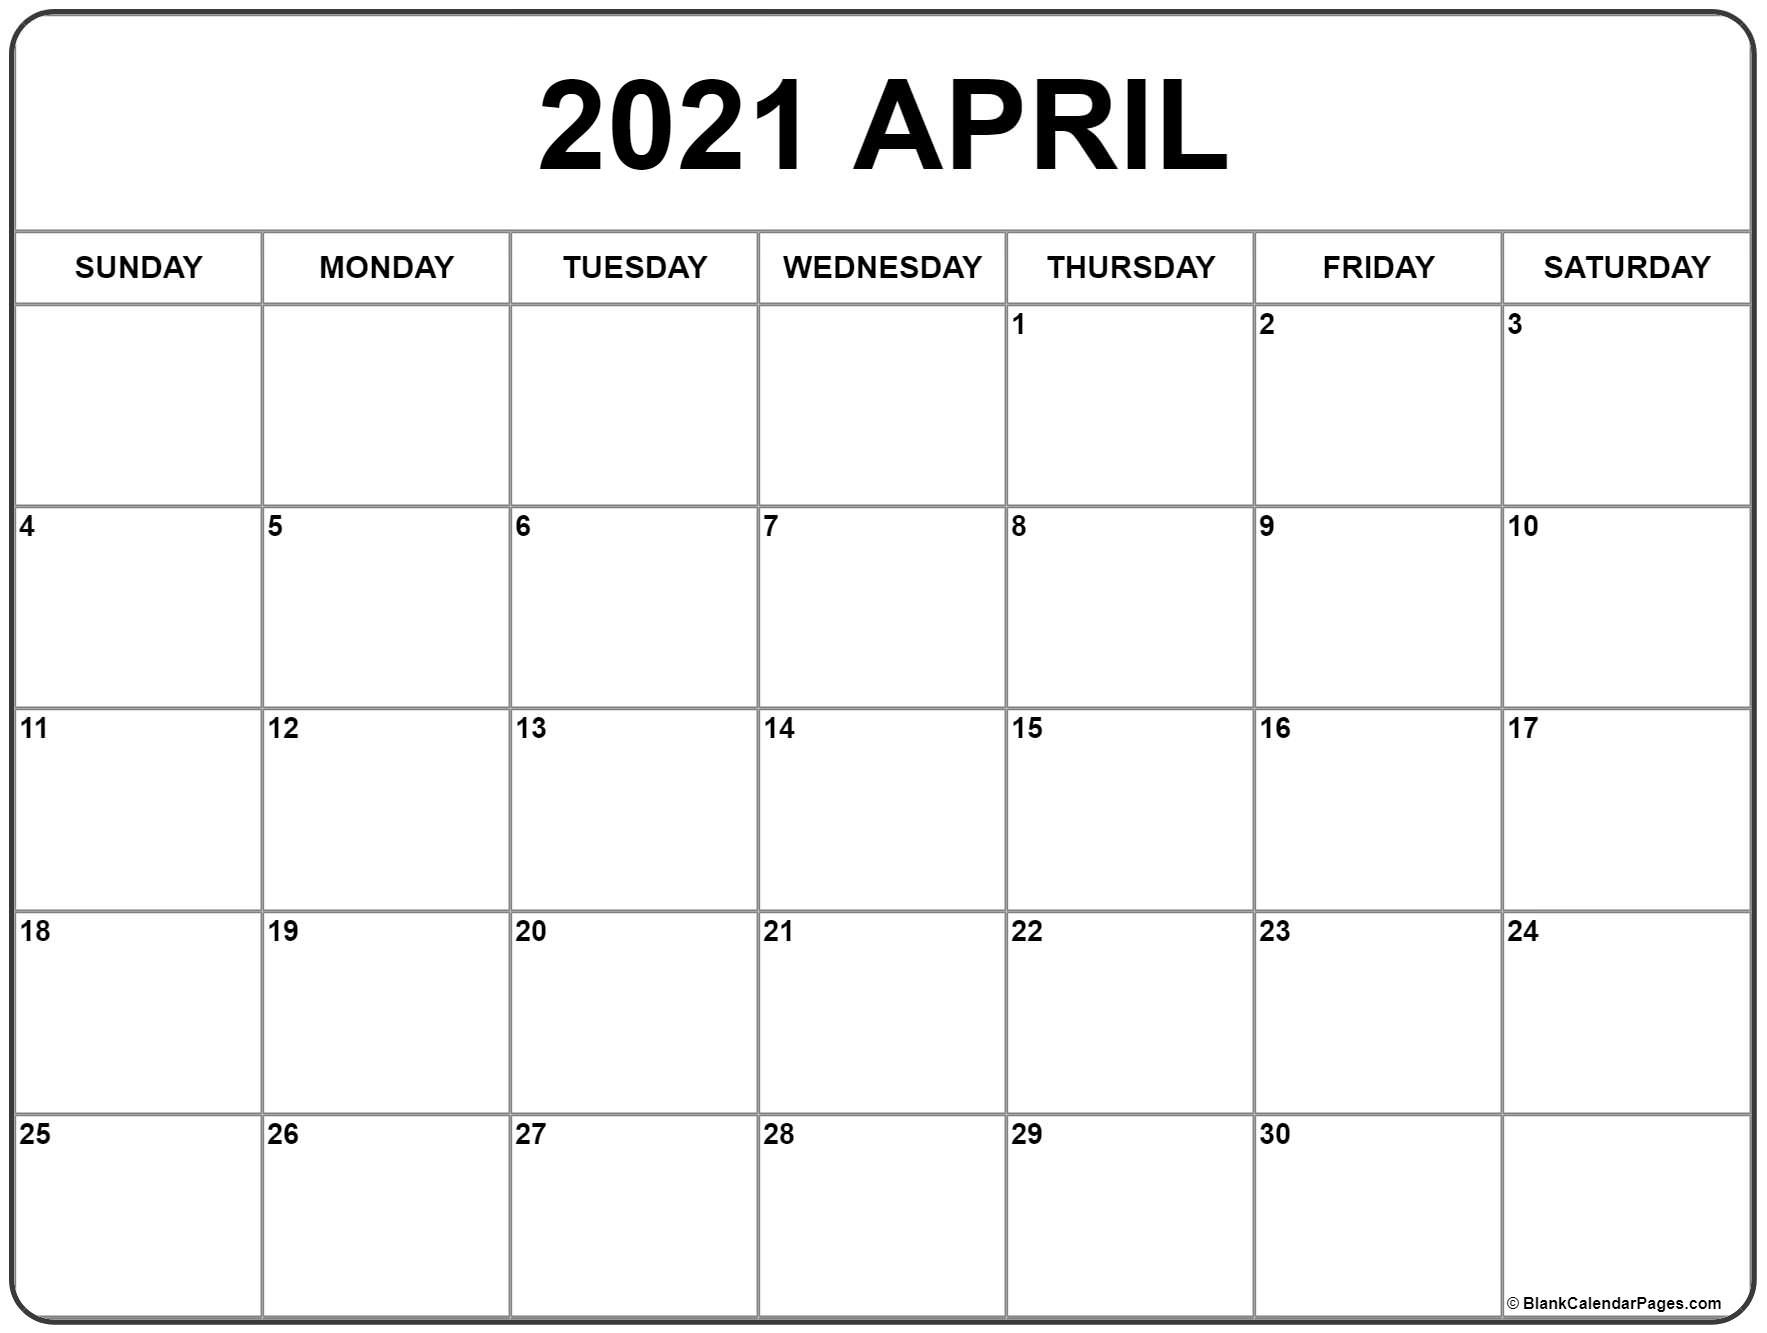 April 2021 Calendar | Free Printable Monthly Calendars  Free 2021 Monthly Calendar Printable Pdf